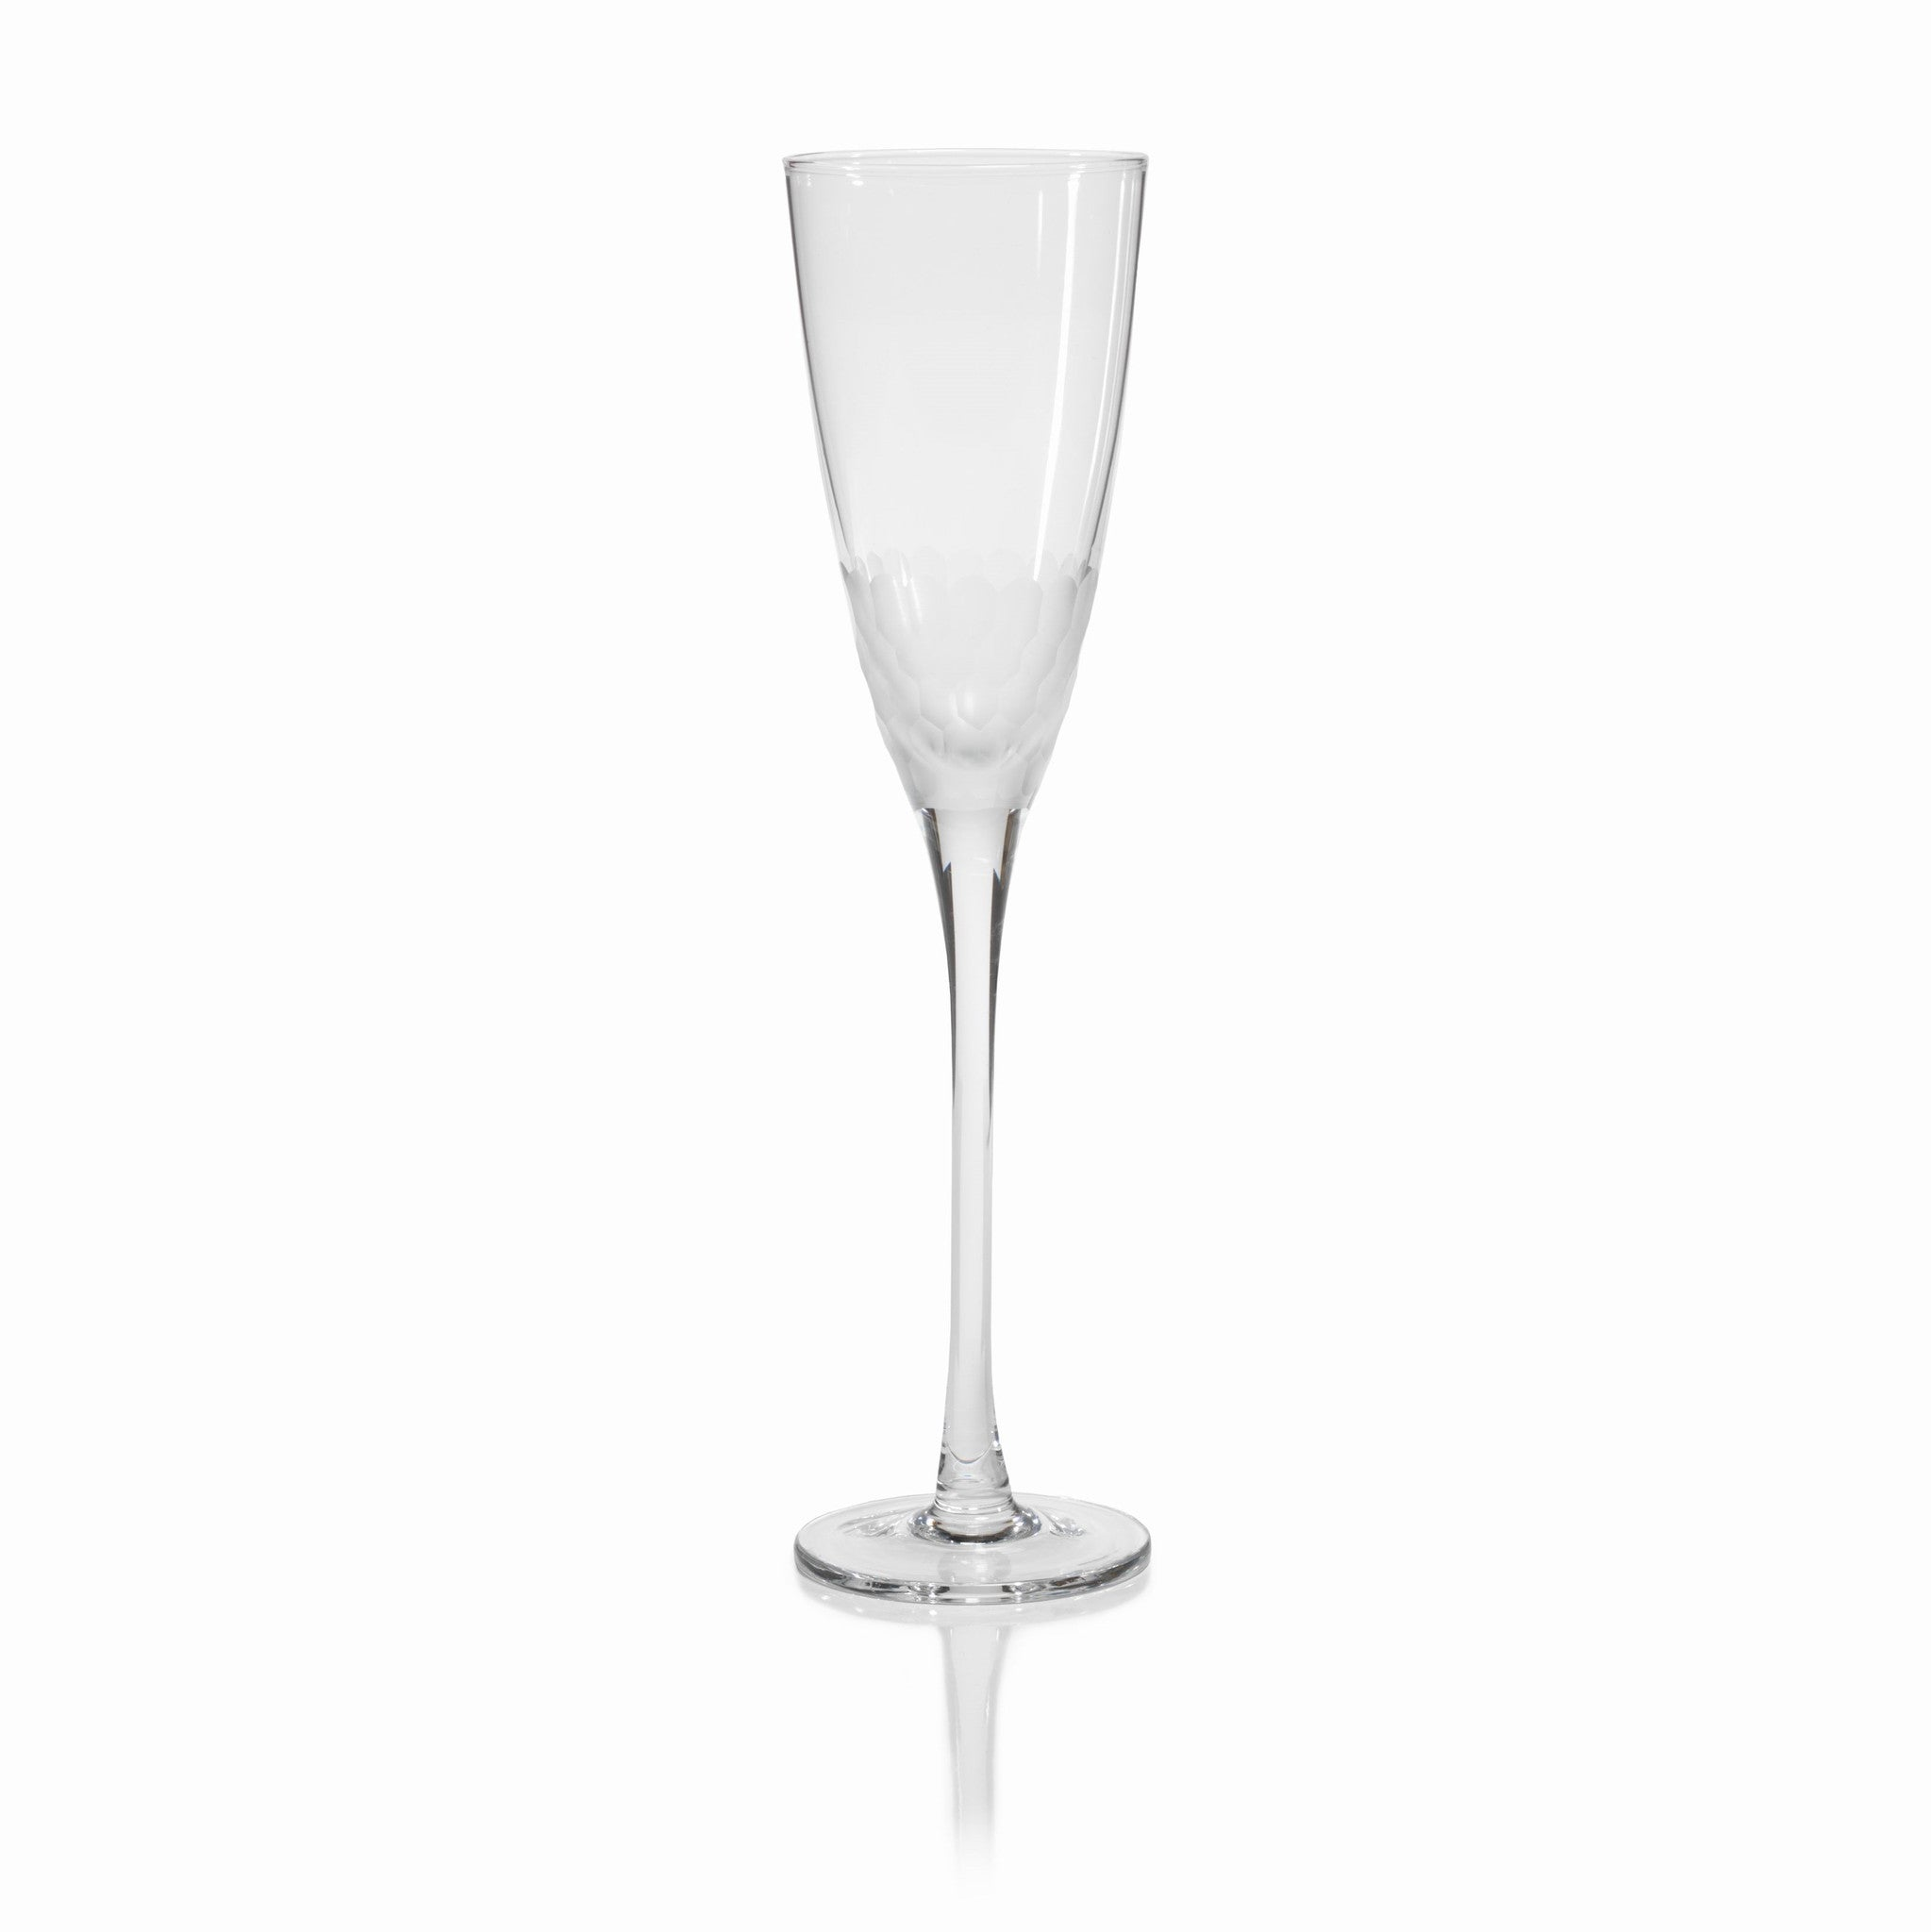 Fez Cut Frosted Stemware - CARLYLE AVENUE